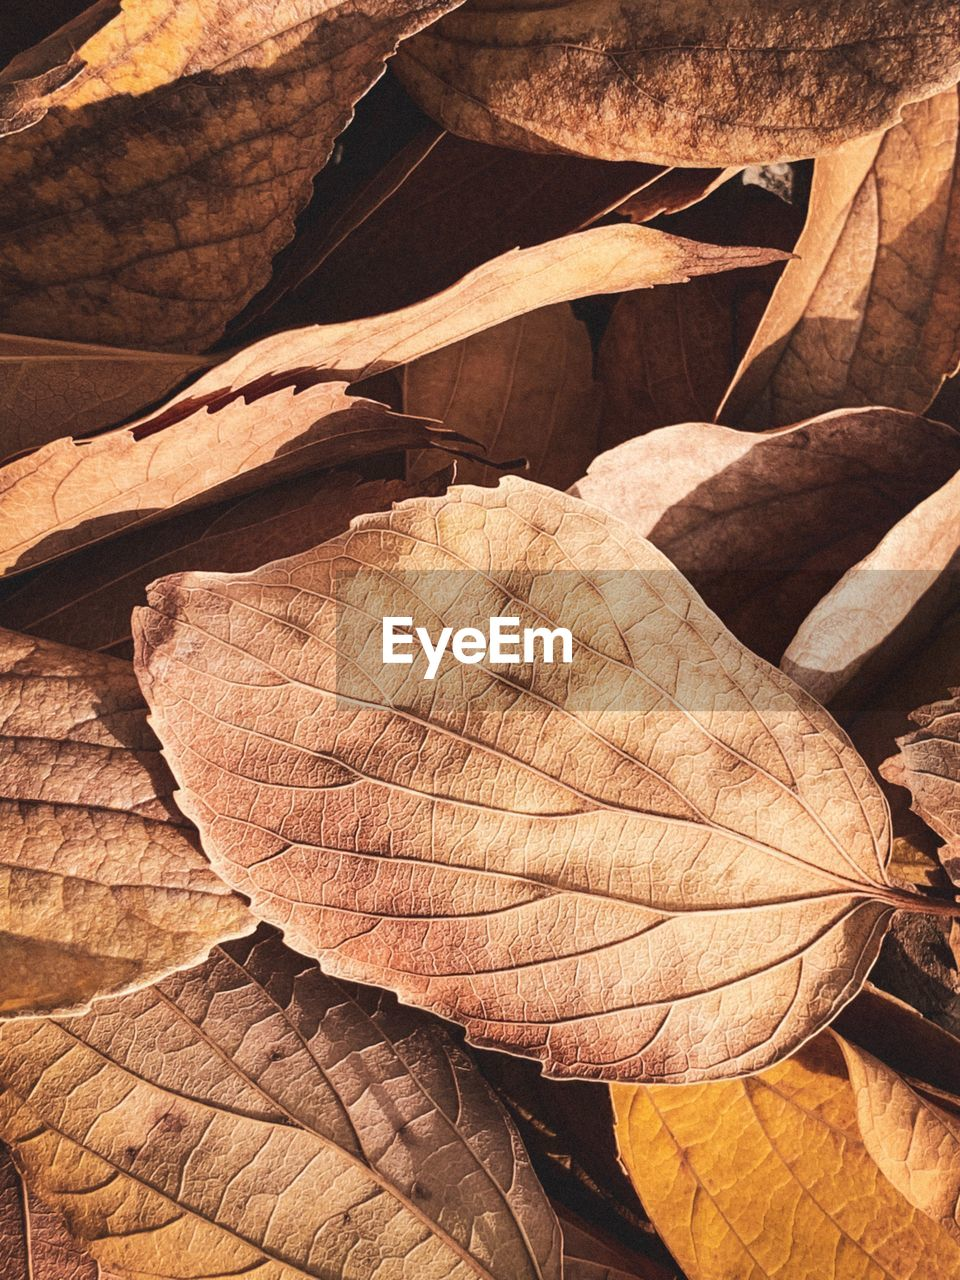 plant part, leaf, nature, day, no people, brown, dry, close-up, full frame, sunlight, autumn, leaf vein, leaves, backgrounds, plant, beauty in nature, outdoors, change, tranquility, pattern, natural condition, dried, arid climate